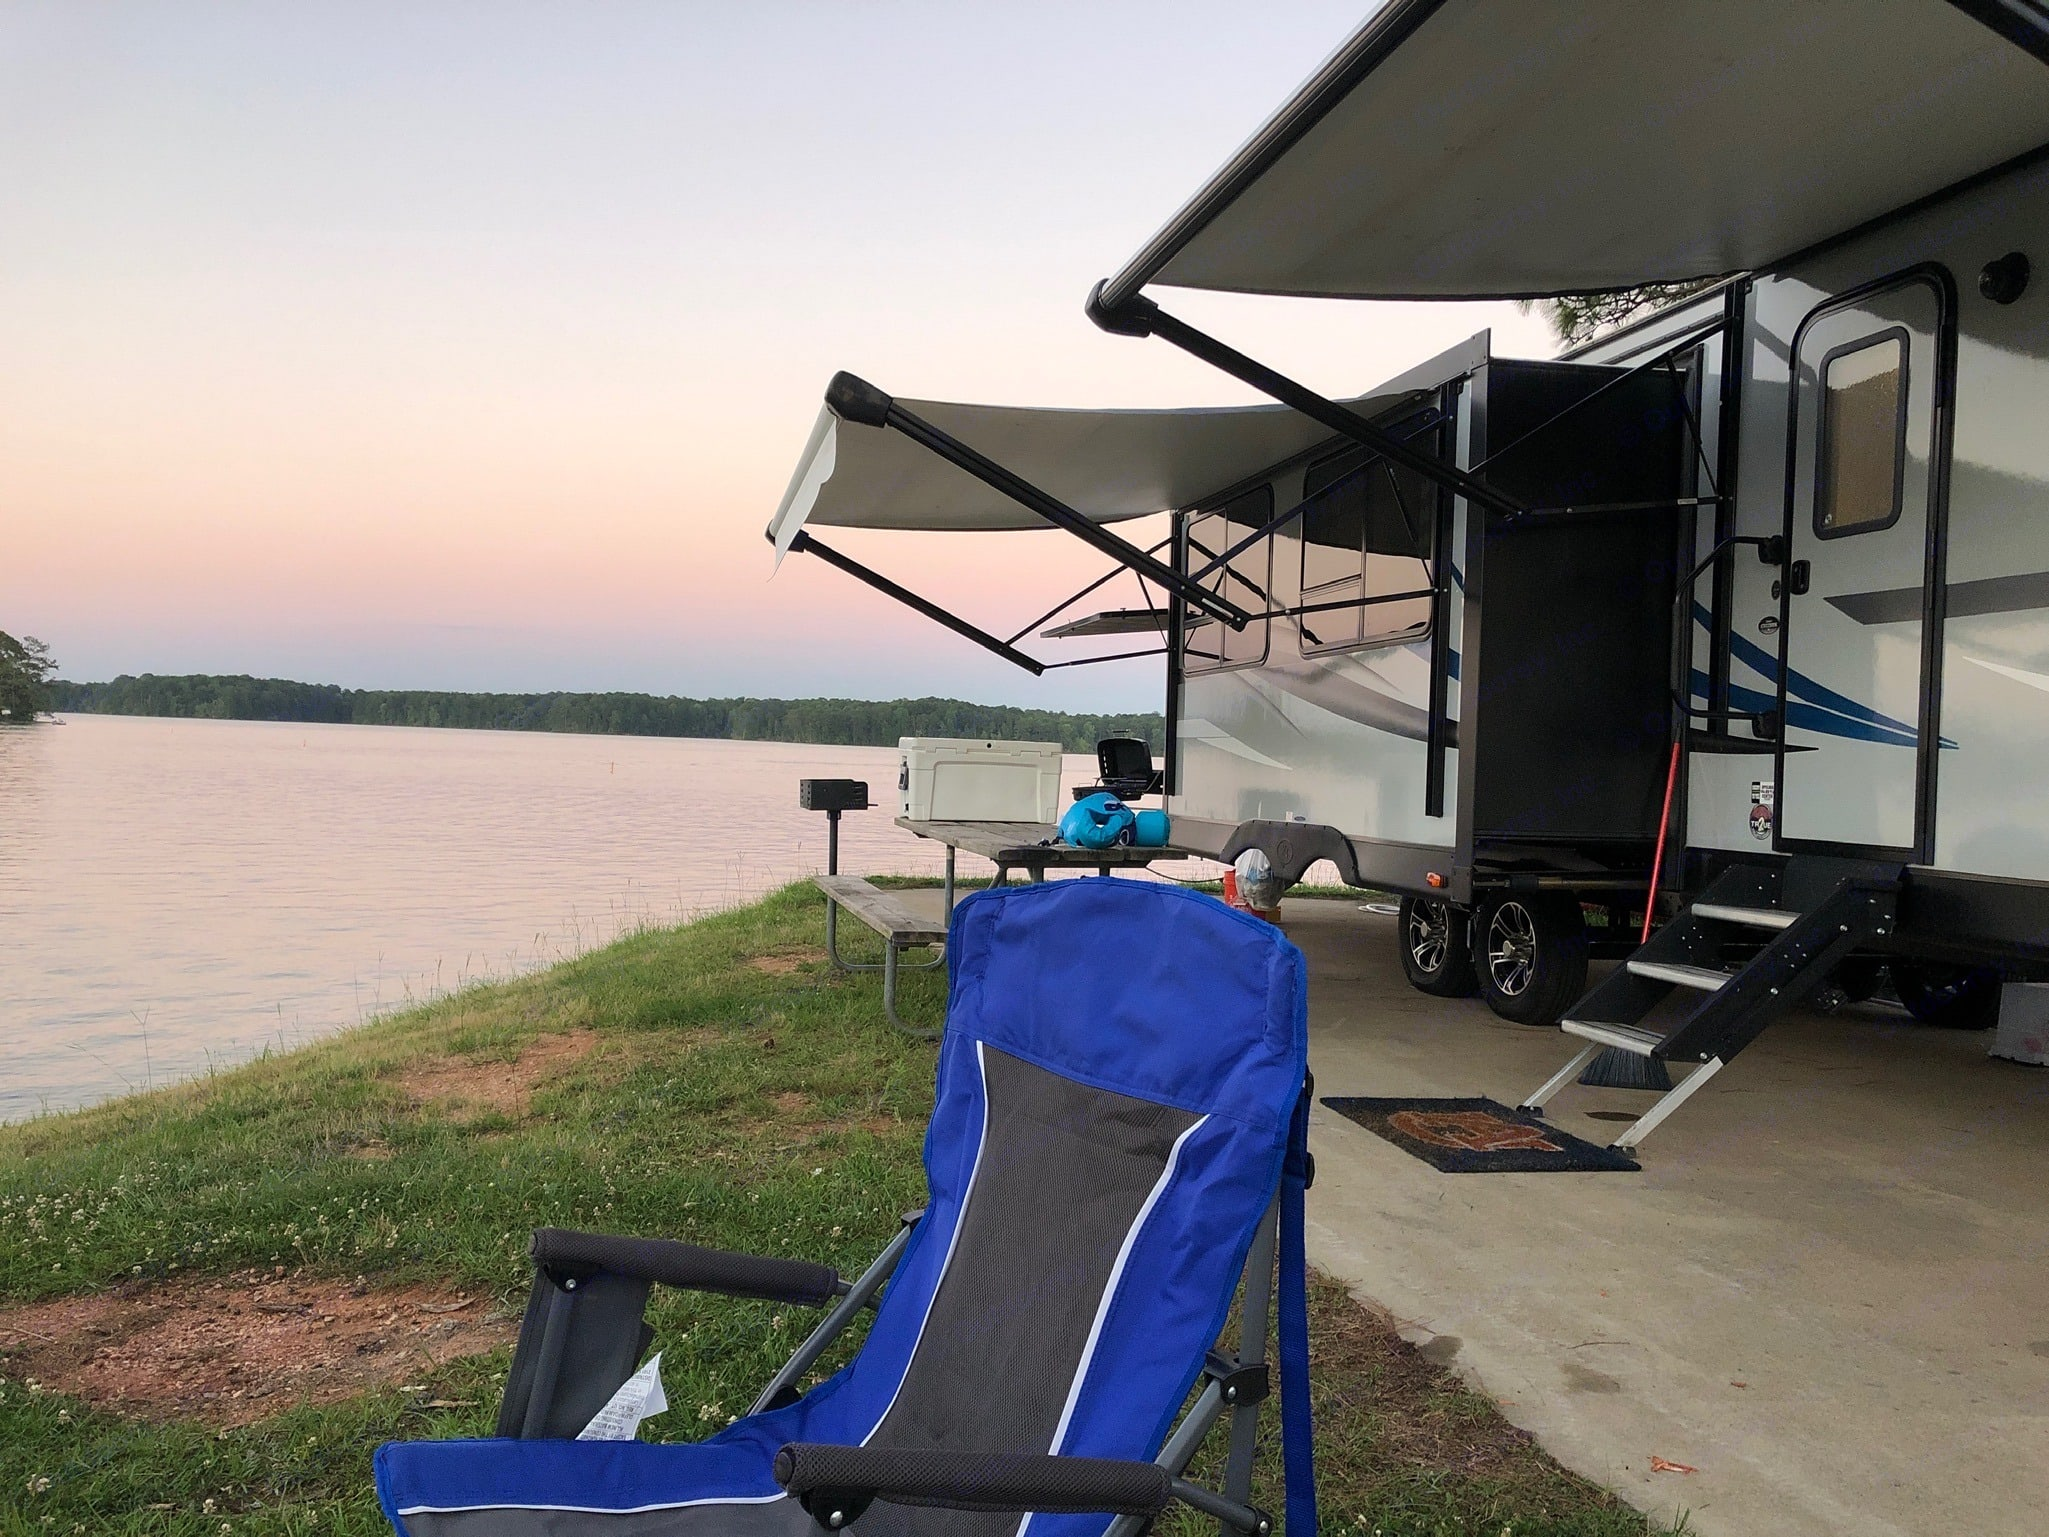 Wind Creek State Park. K-Z Manufacturing Connect C322BHK 2019